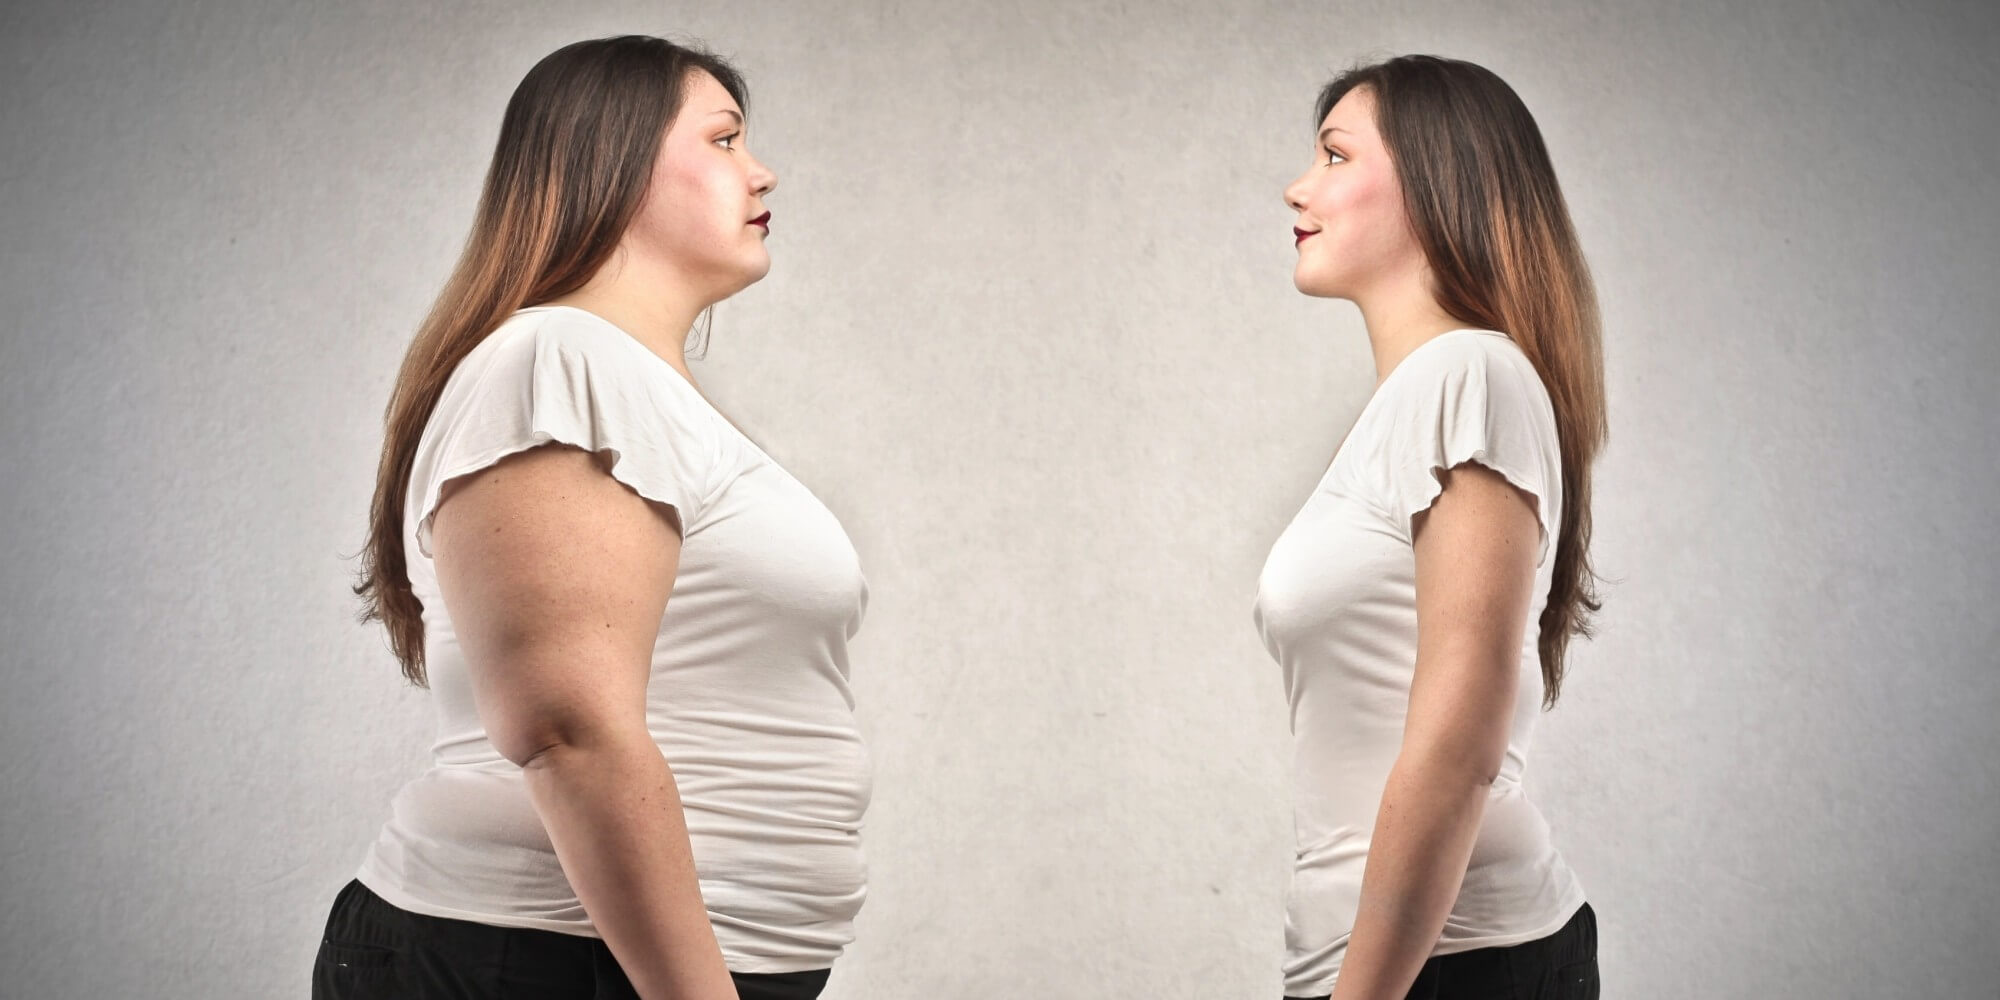 Viewpoint: Newsweek's surprisingly unscientific view of the genetics of obesity